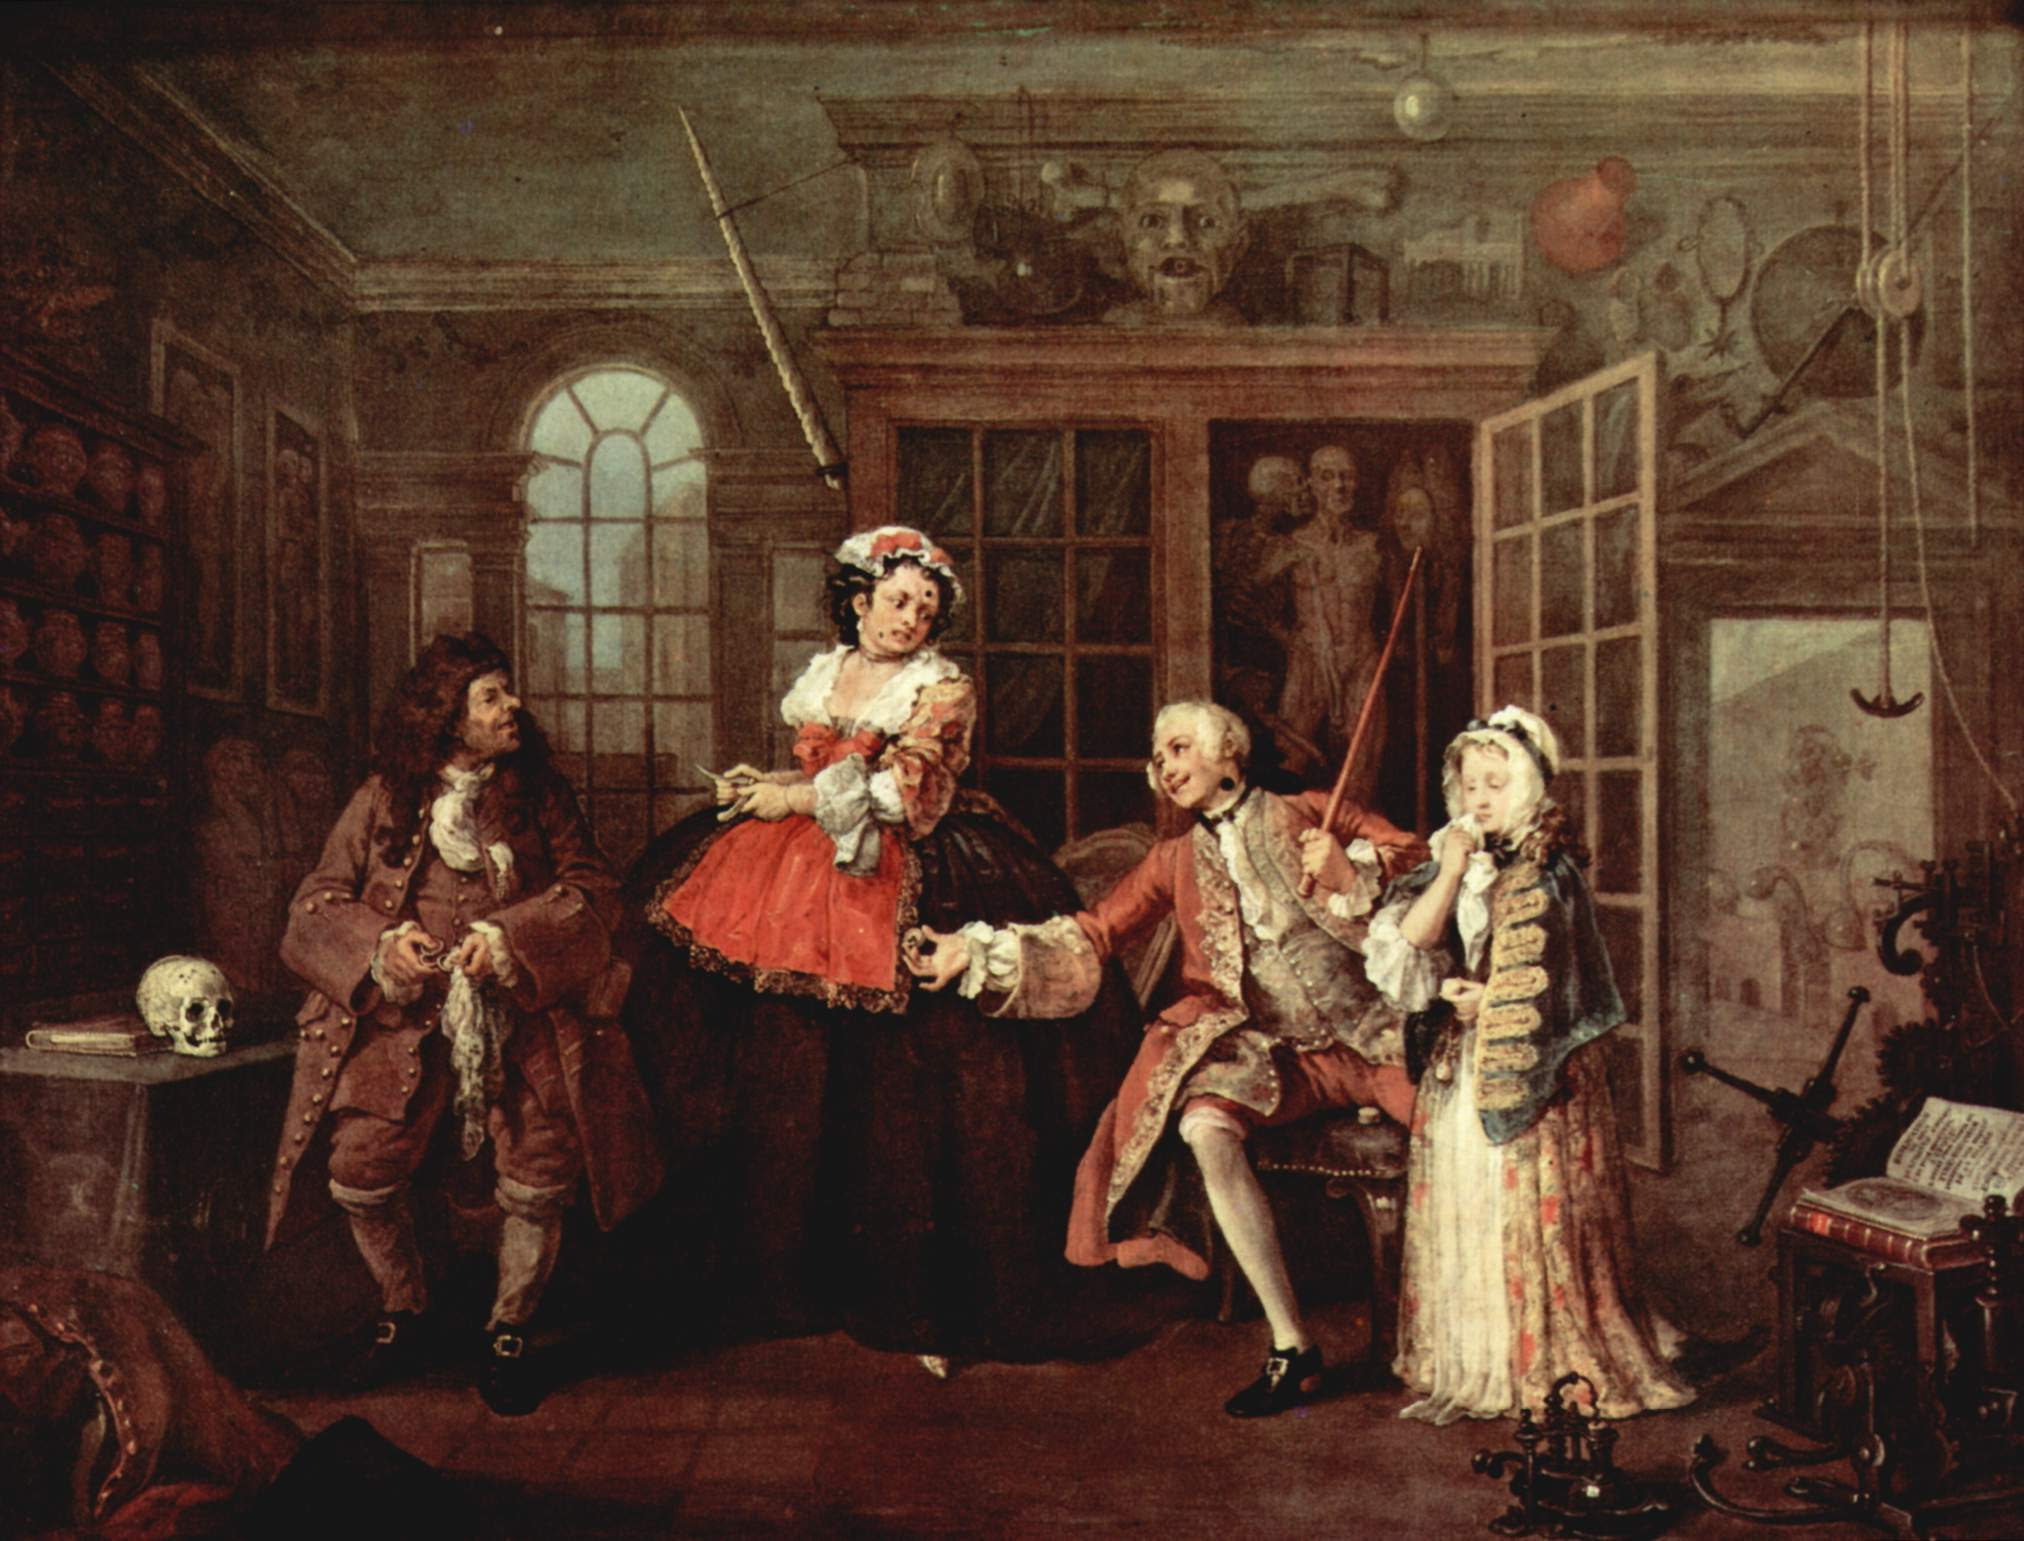 mariage-a-la-mode, Hilliam Hogarth, 1745